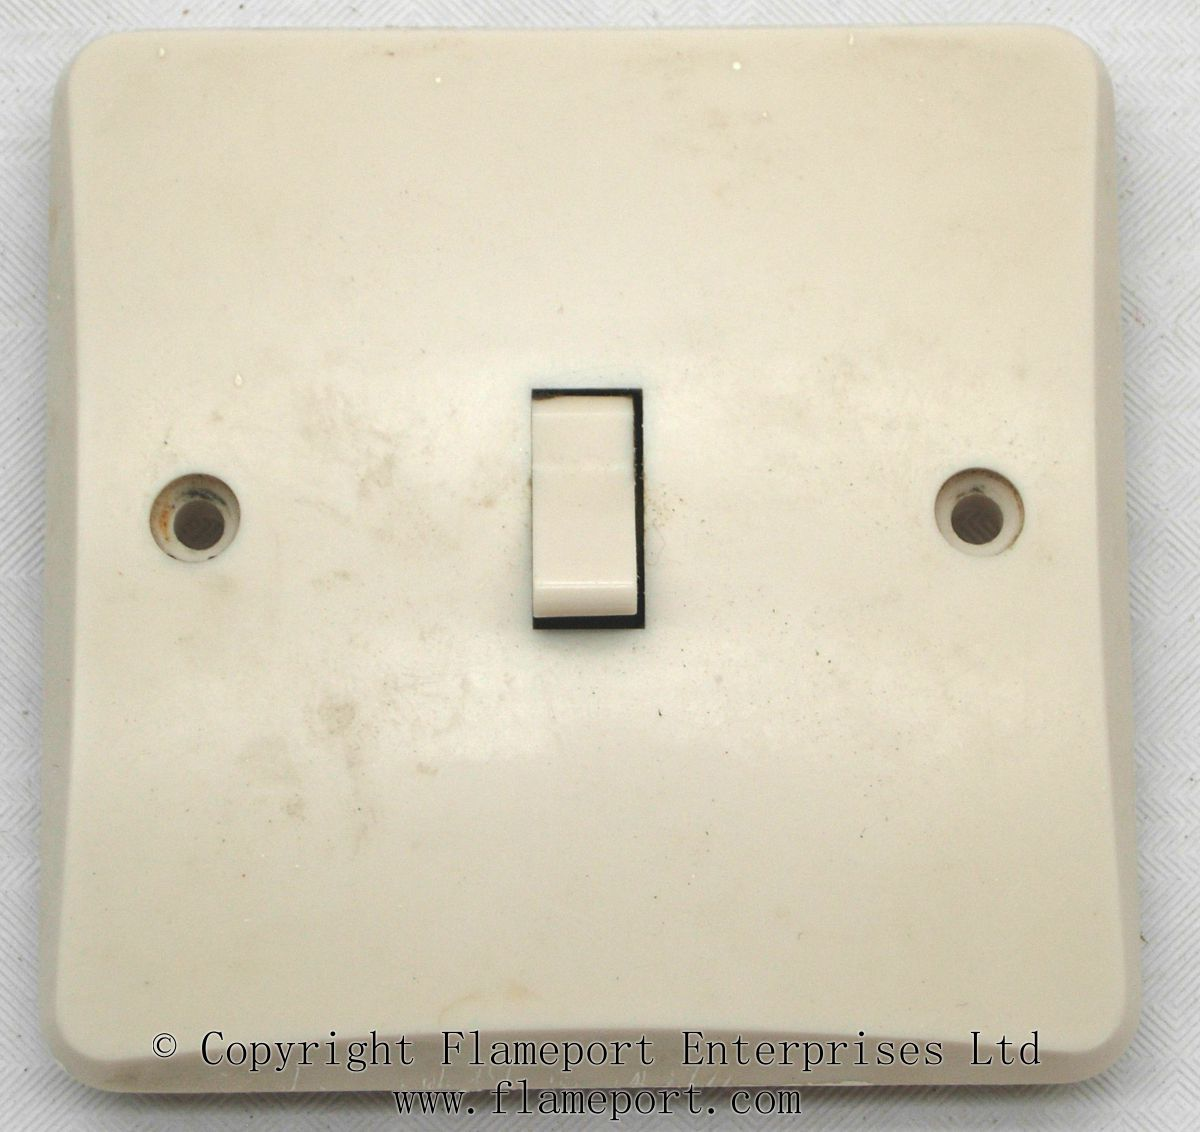 Light Switch No Wiring